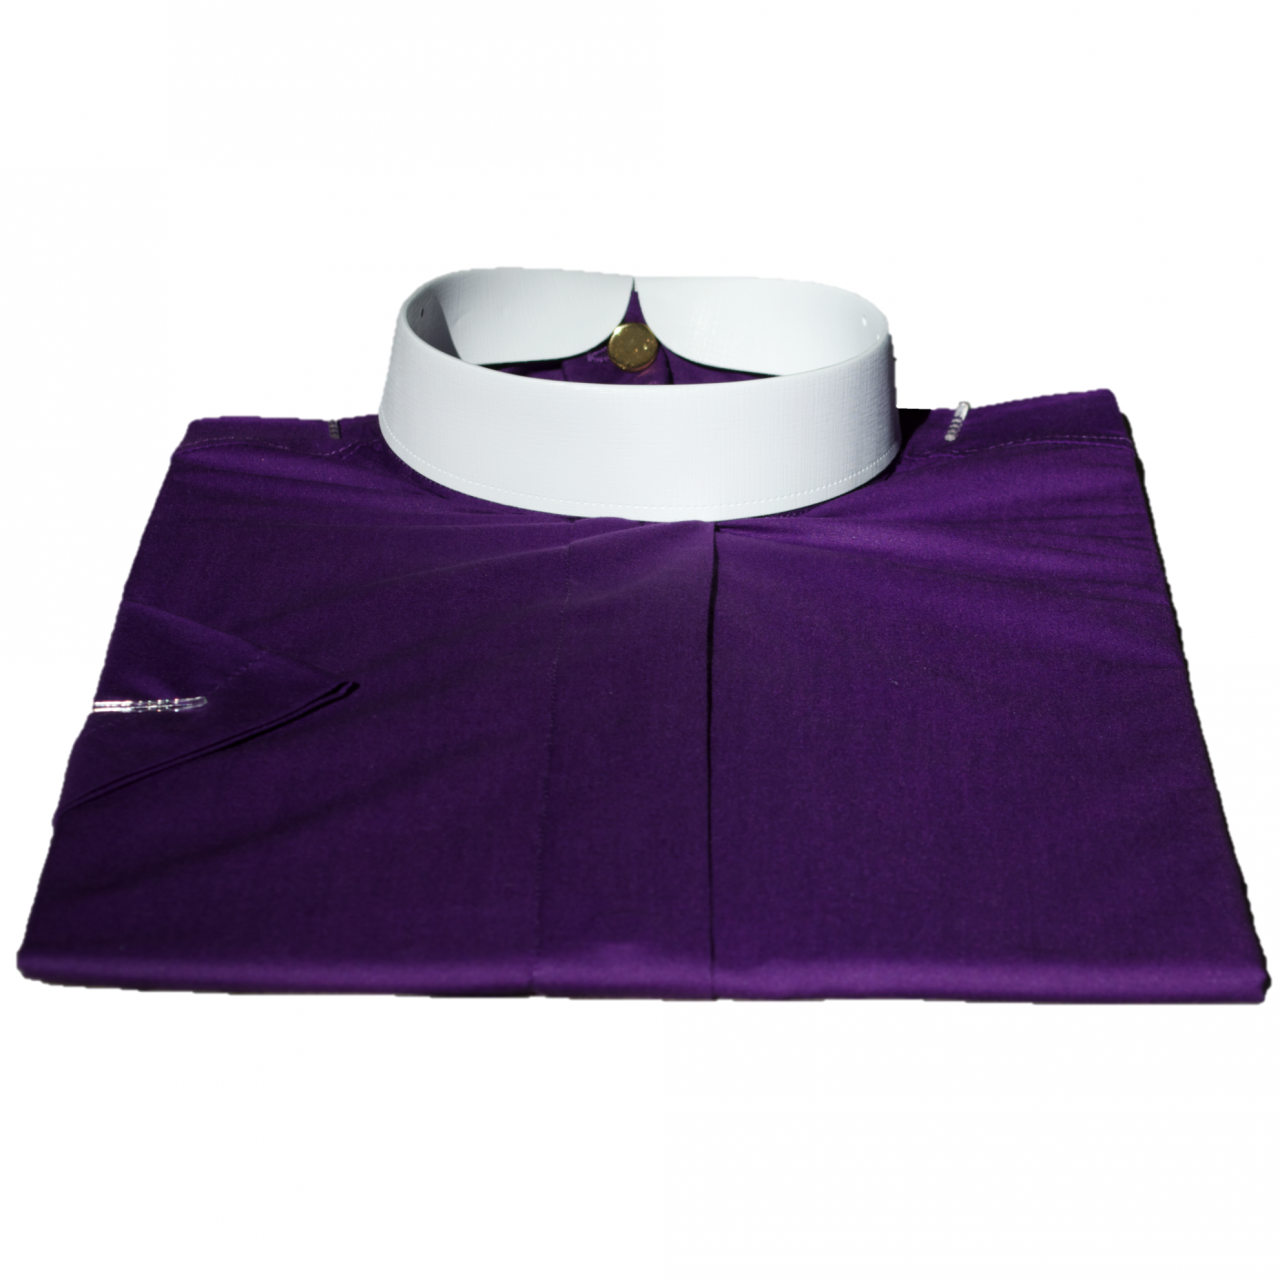 655. Women's Short-Sleeve (Banded) Full-Collar Clergy Shirt - Purple